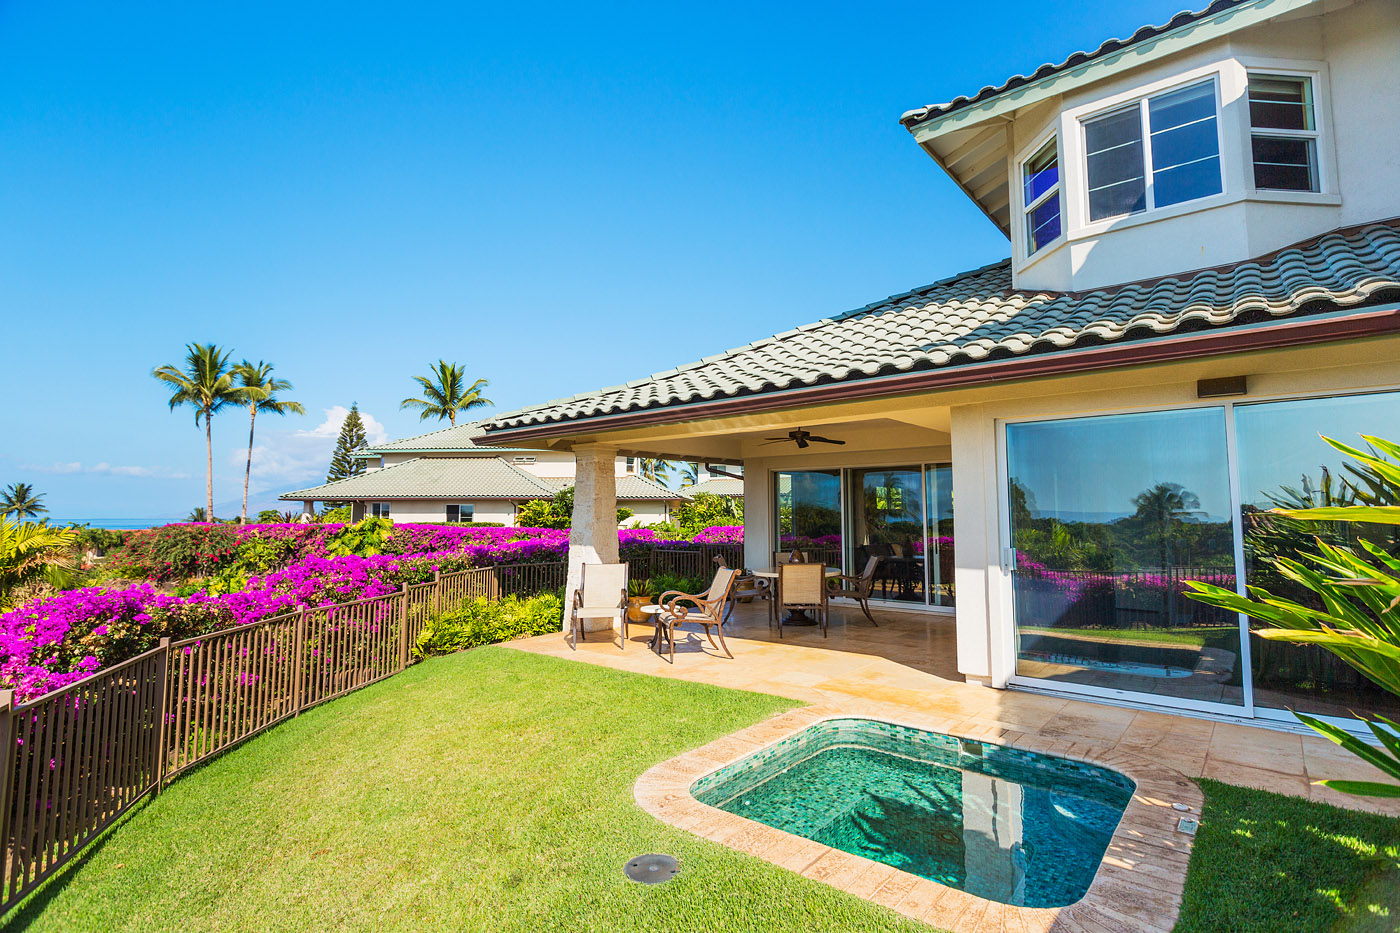 wailea maui luxury condo with ocean and golf course view for sale